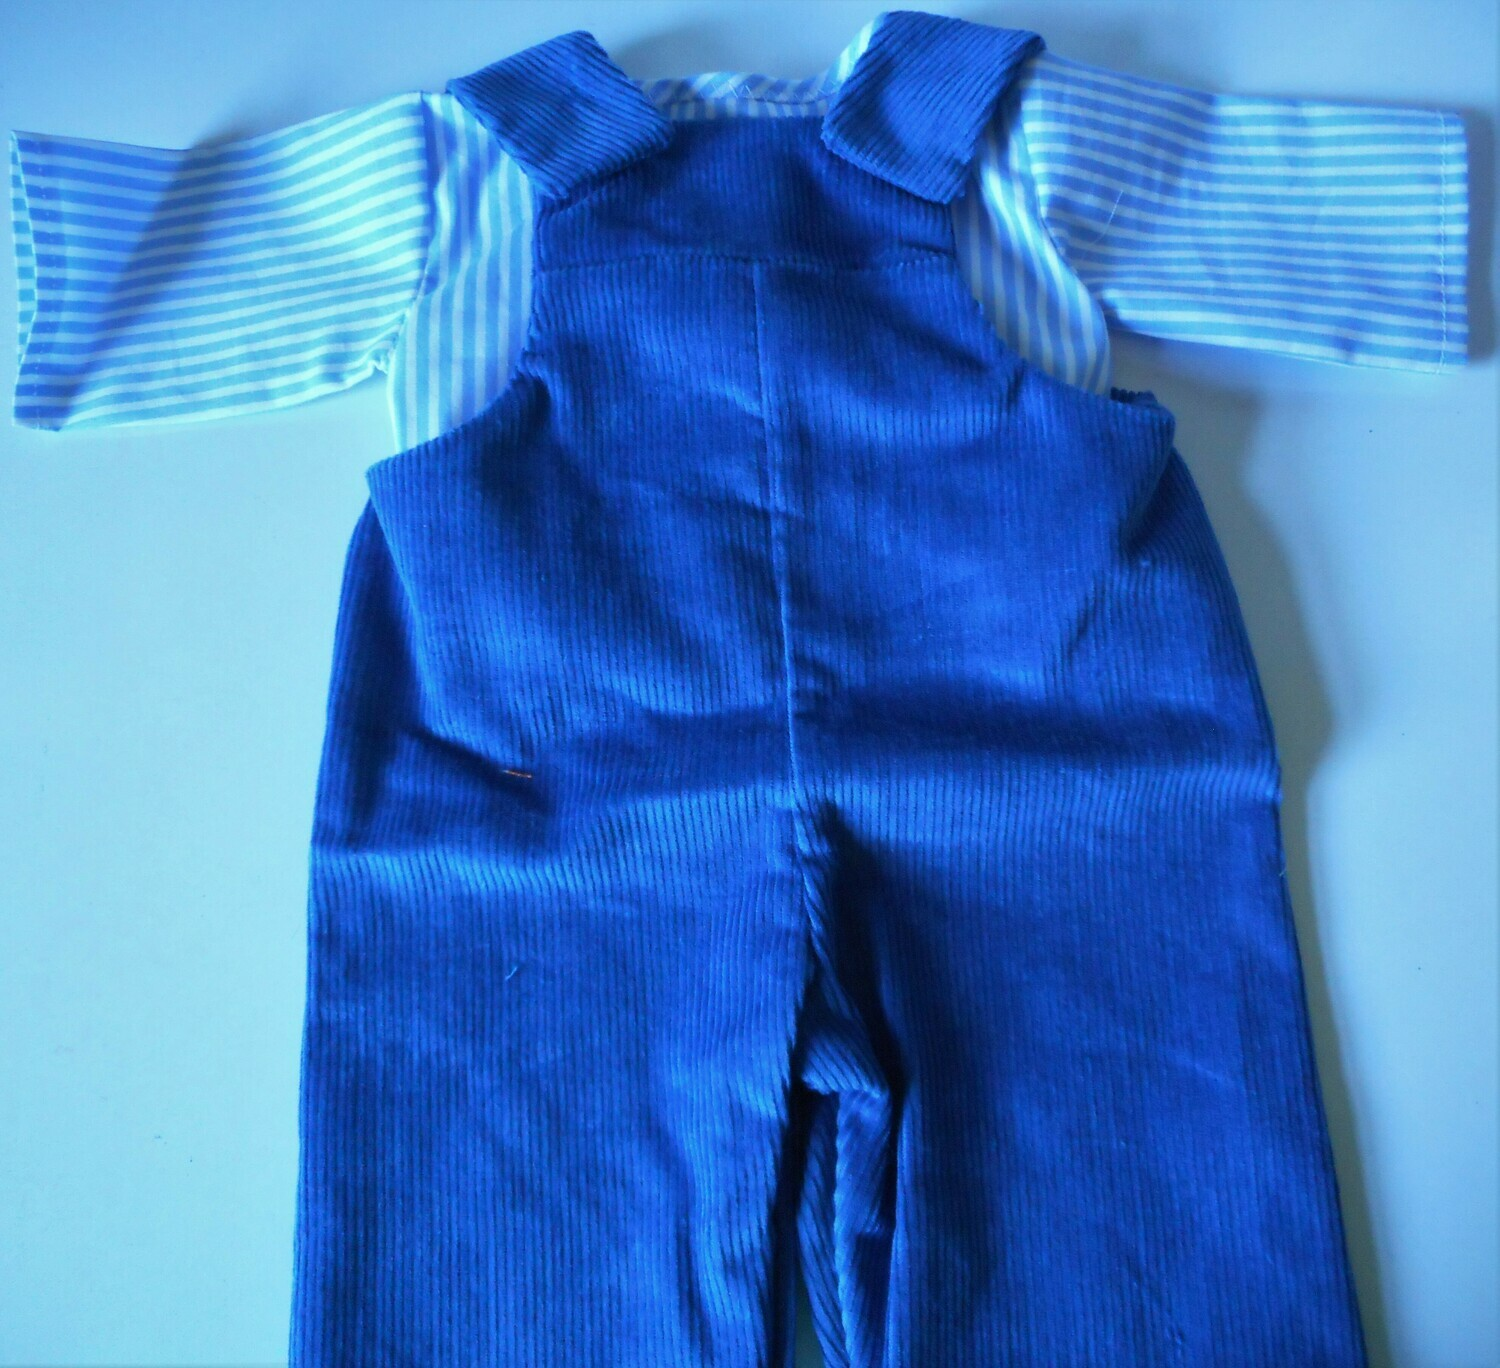 Outfit - blue dungarees and striped top in 3 sizes